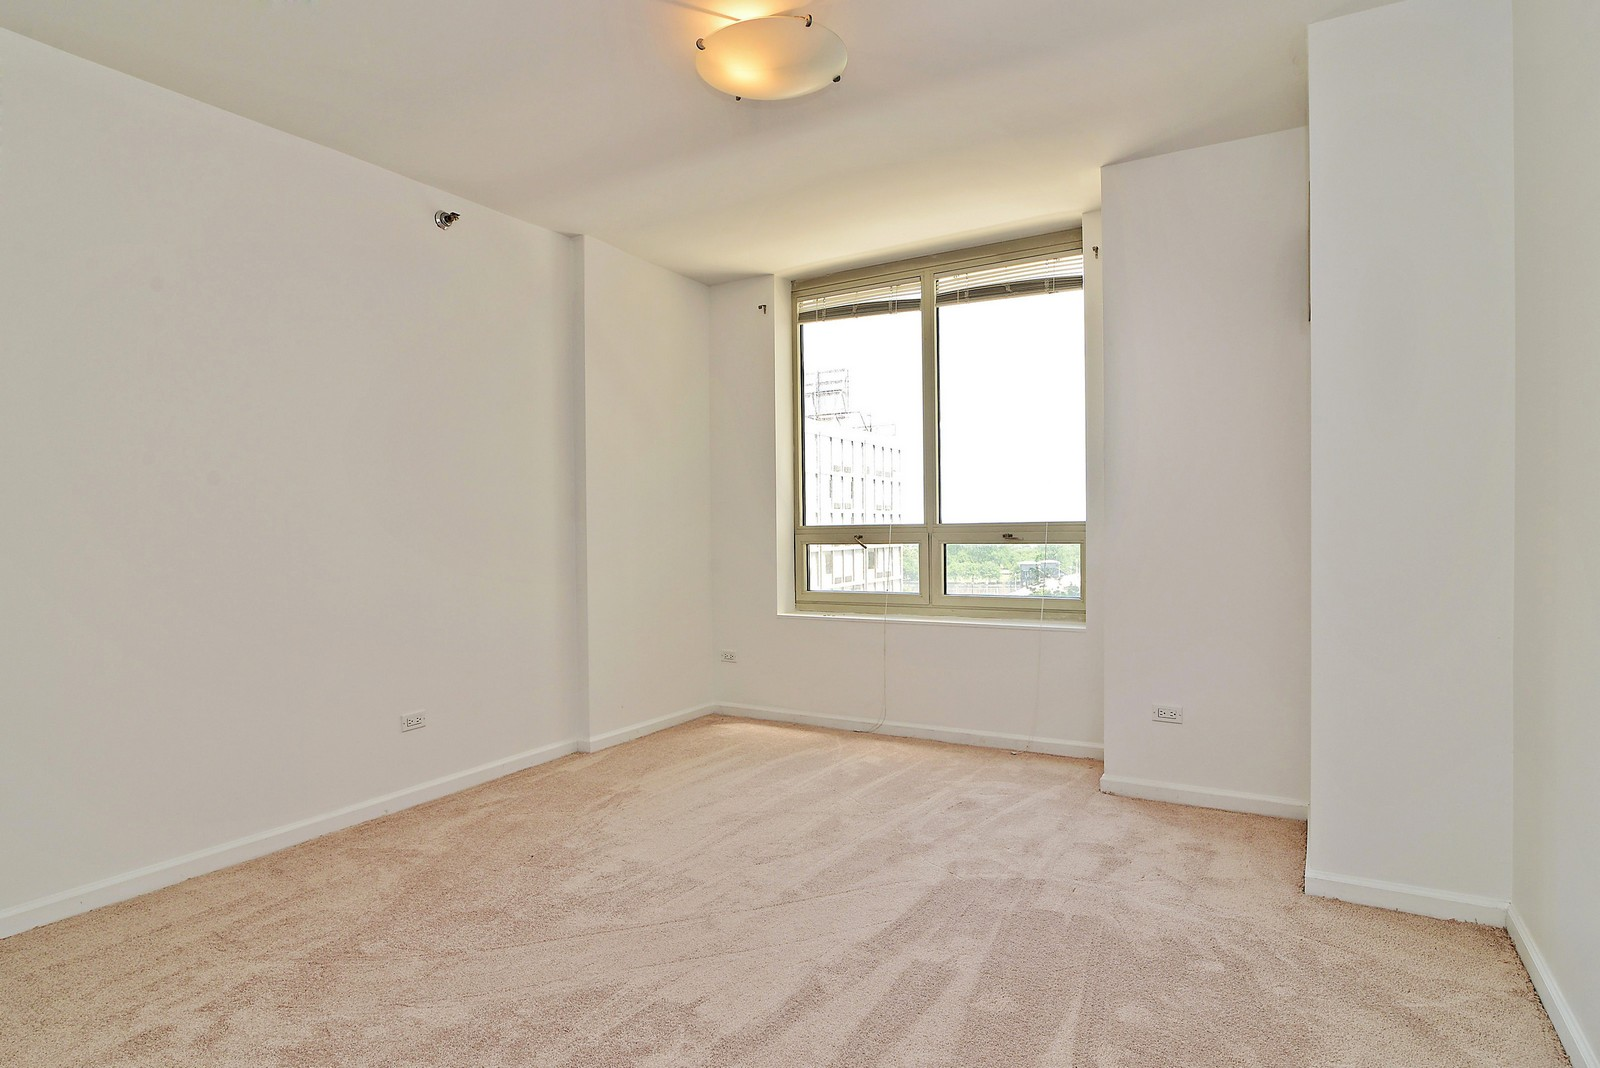 Real Estate Photography - 1111 S Wabash, Apt 703, Chicago, IL, 60605 - Master Bedroom